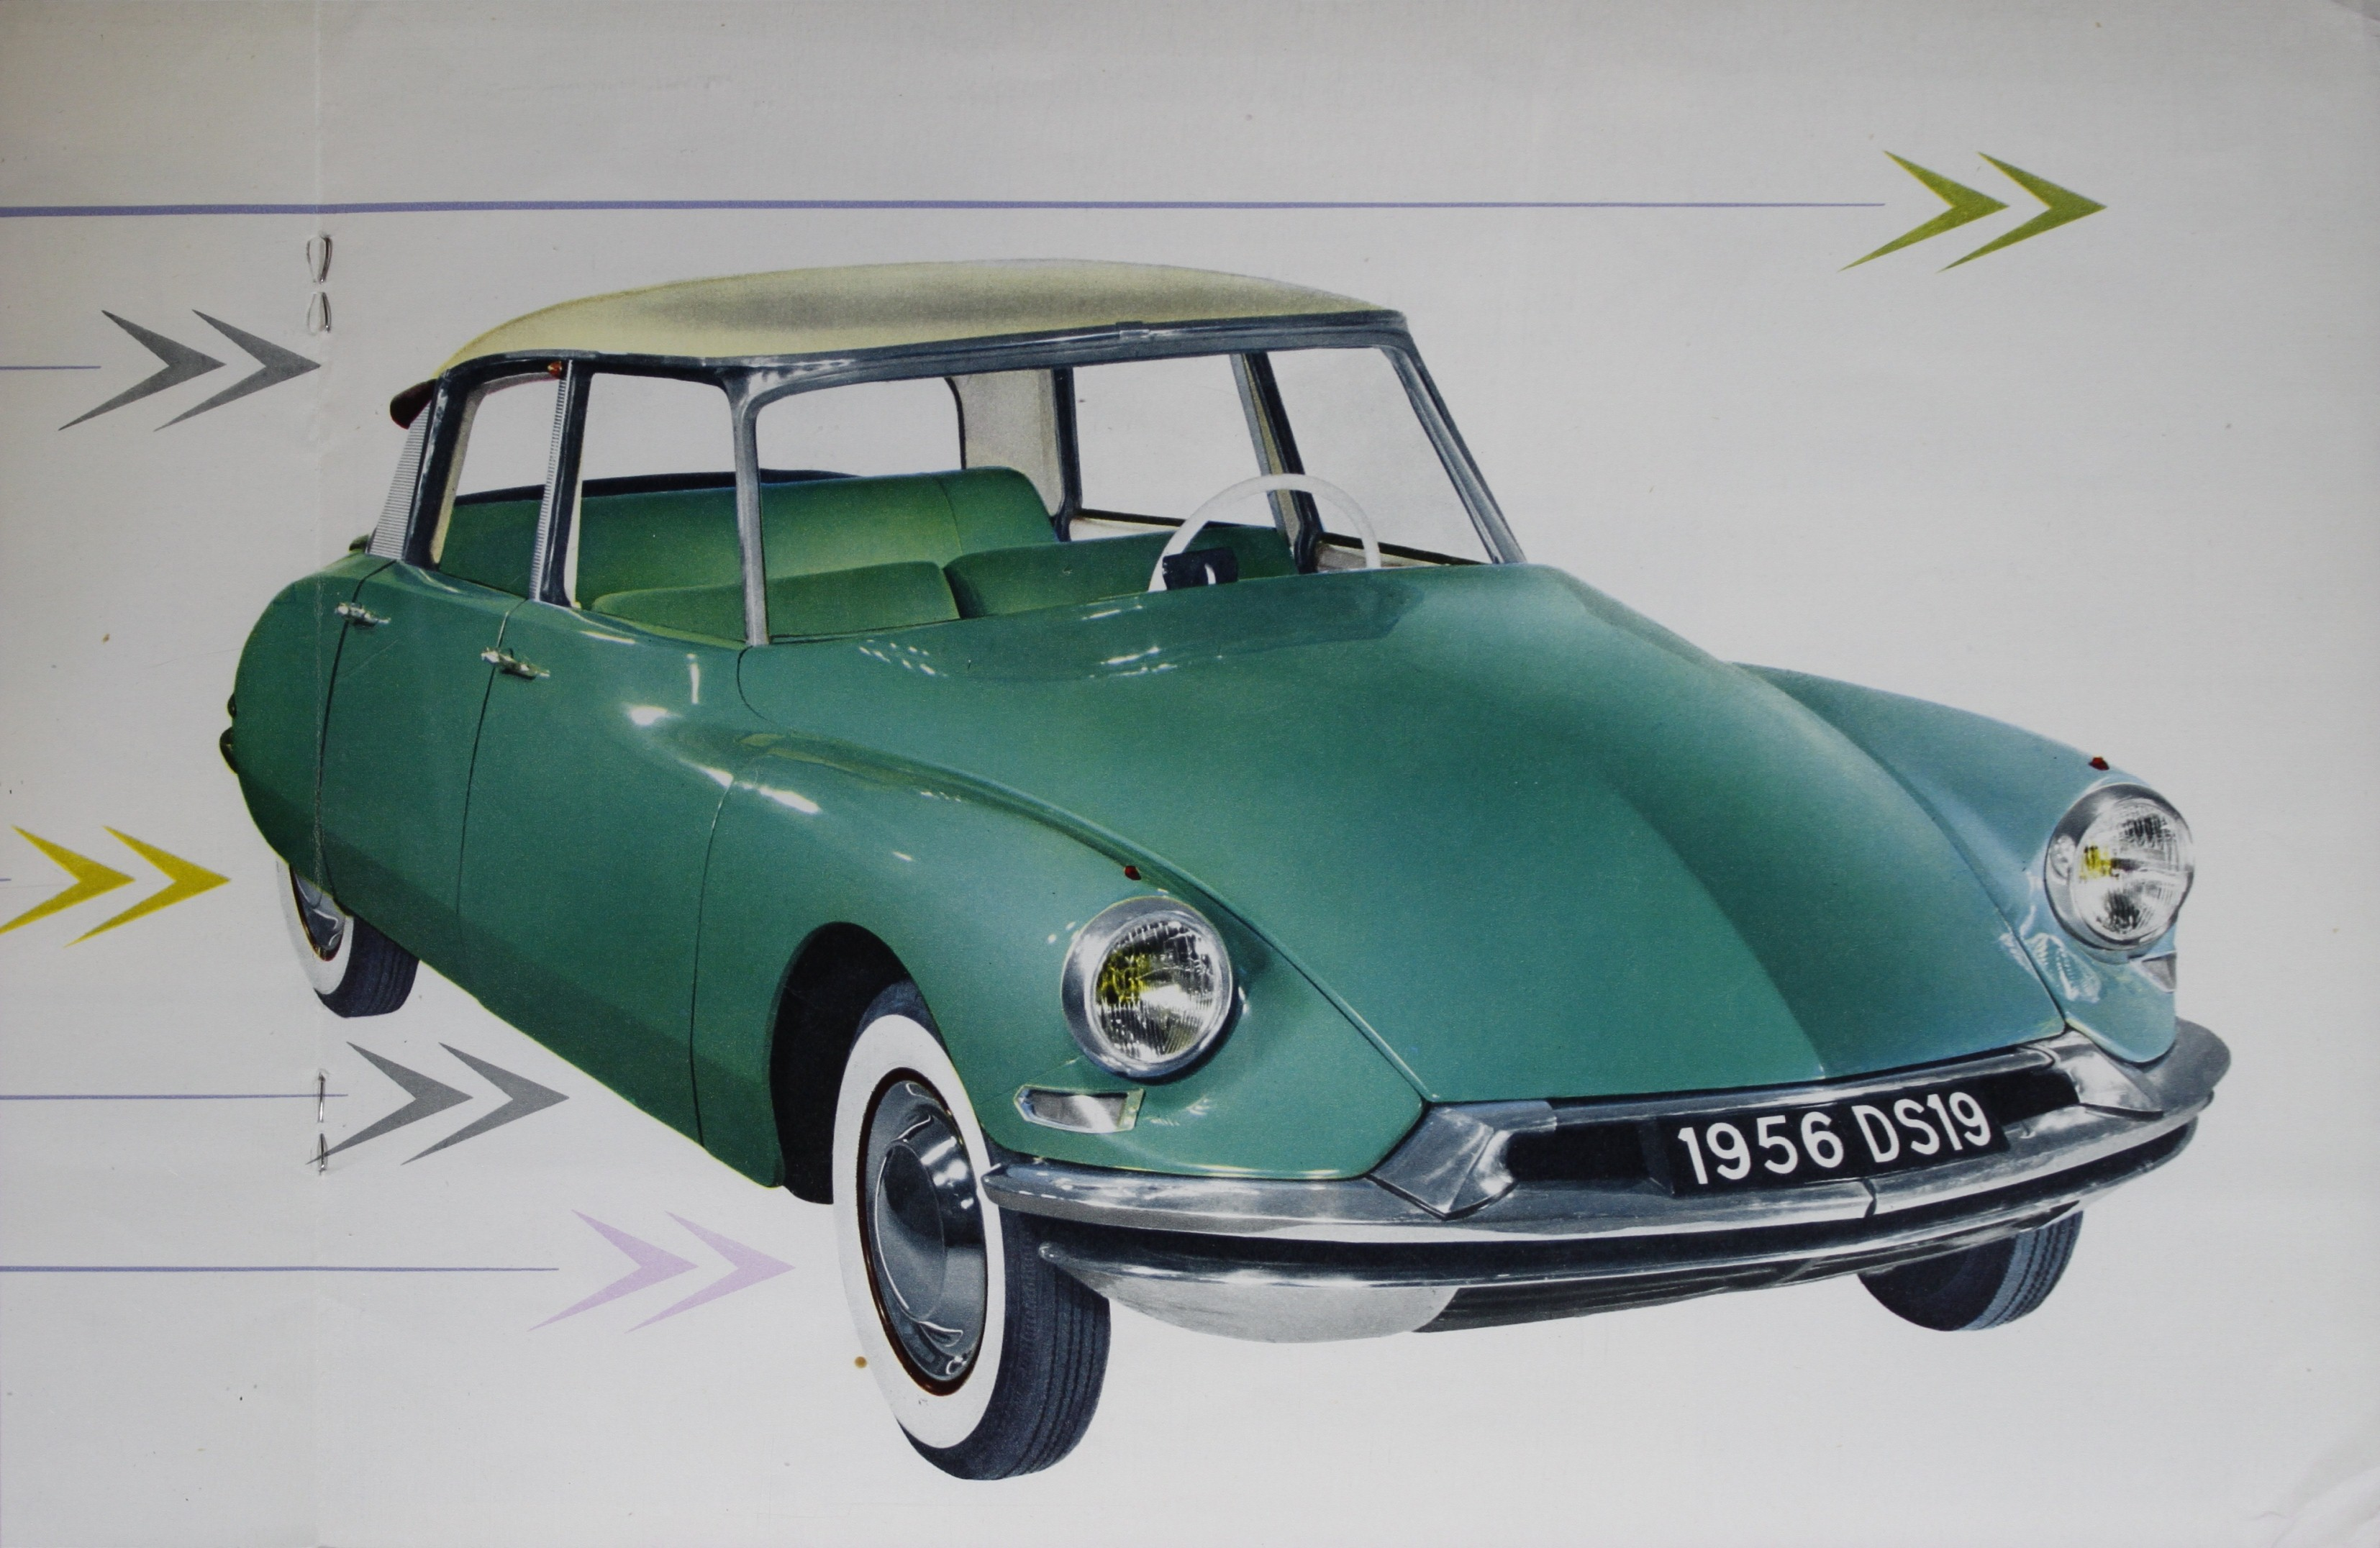 1956 citroen ds19 information and photos momentcar citroen ds19 1956 1 citroen ds19 1956 1 vanachro Image collections